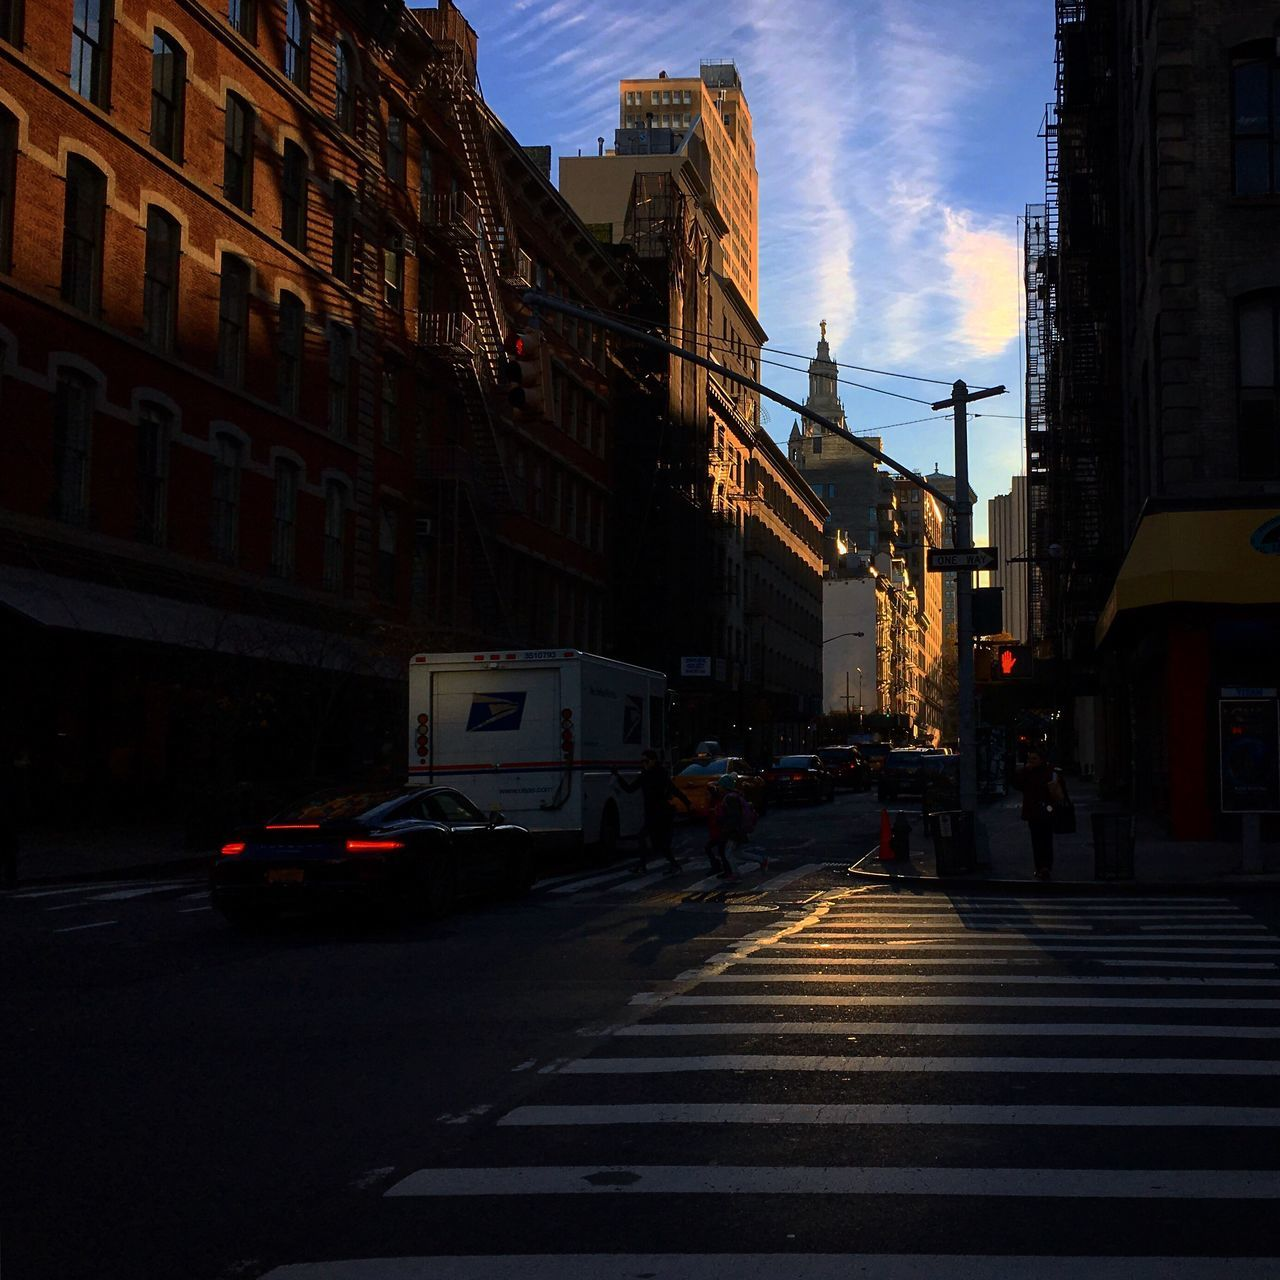 Building Exterior Architecture Built Structure City Street Transportation City Street Sky Outdoors Travel Destinations Road No People Day NYC New York New York City Architecture Blue Sky City Autumn Morning Light Manhattan Downtown Sunlight Gotham City